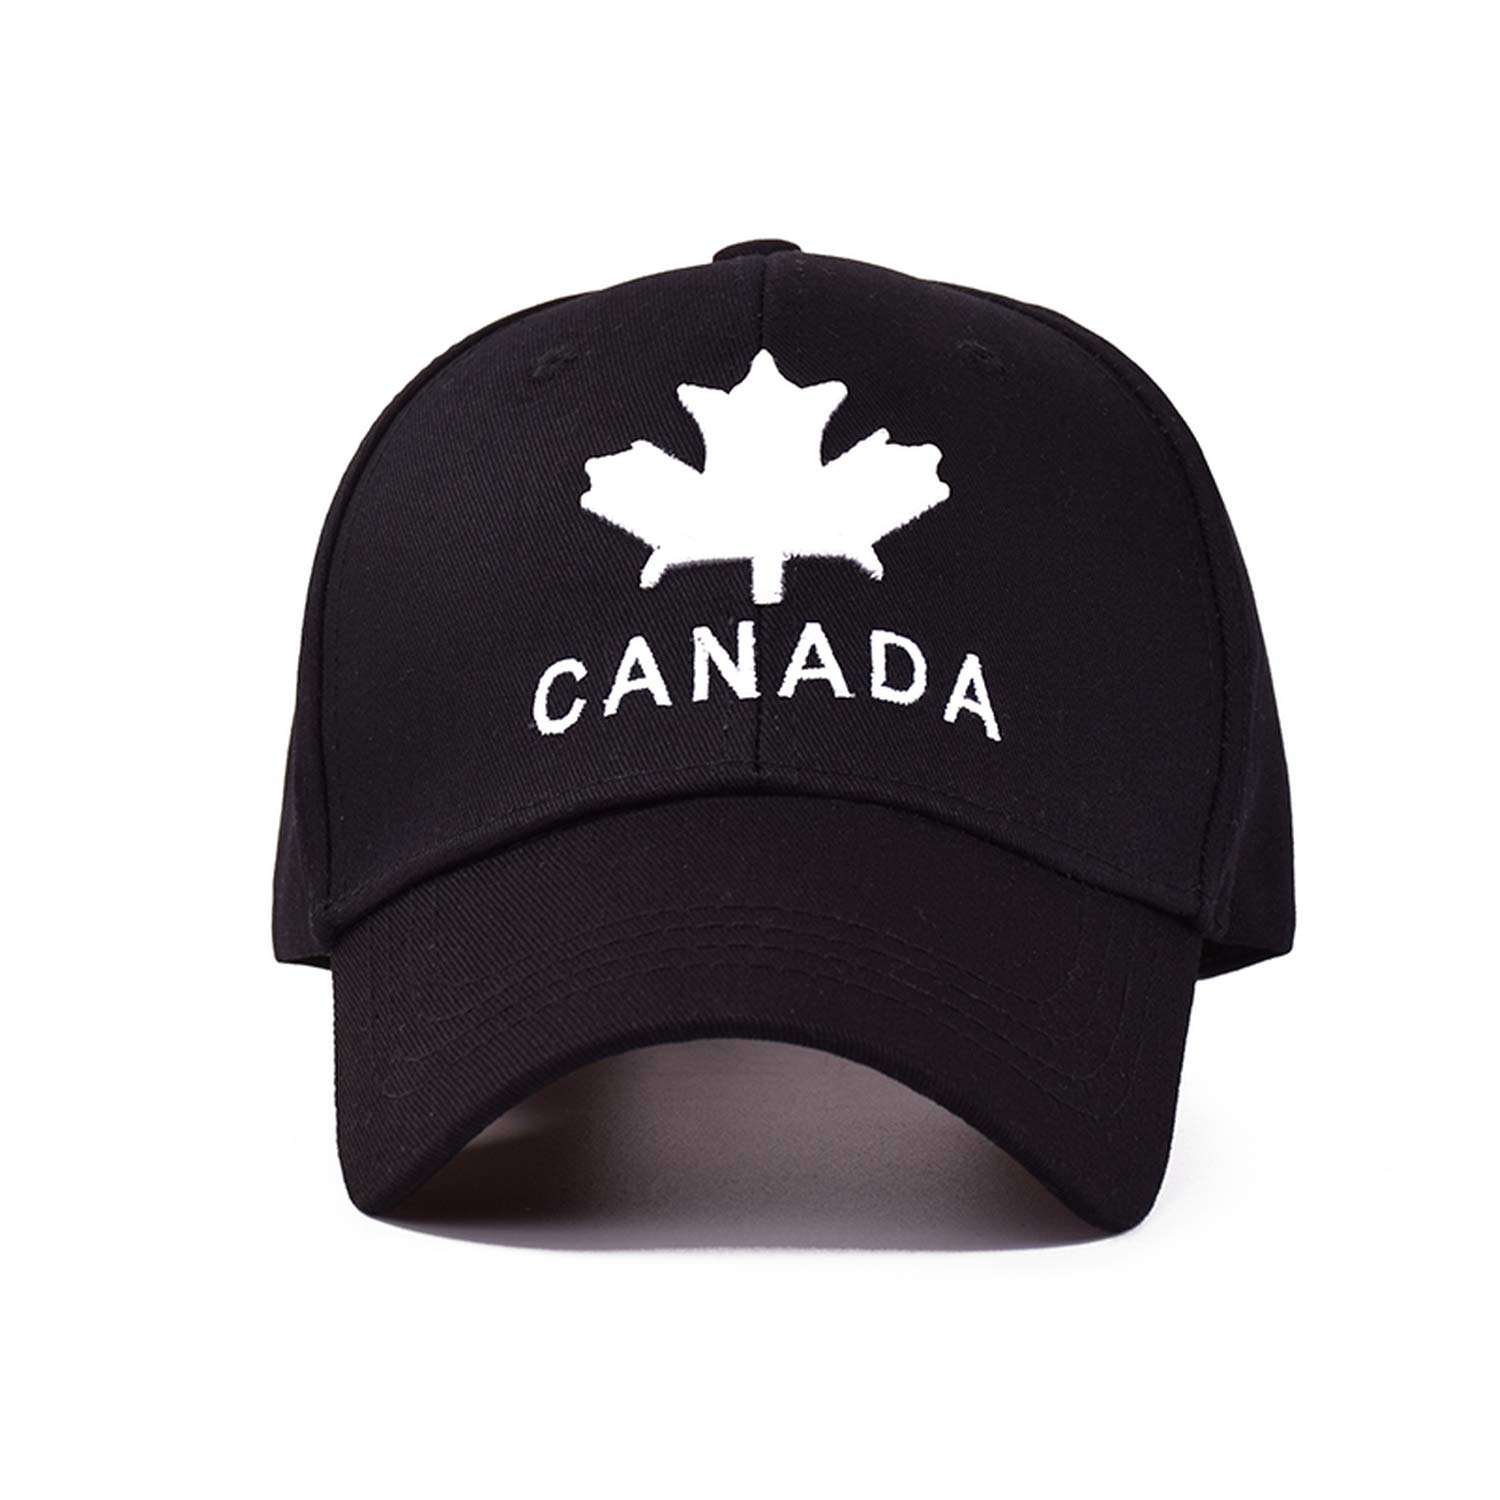 56e15b2c08cd1 TokLask 2019 New Canada Letter Cotton Embroidery Baseball Caps Snapback Hat  for Men Women Leisure Cap Wholesale Black at Amazon Men's Clothing store: